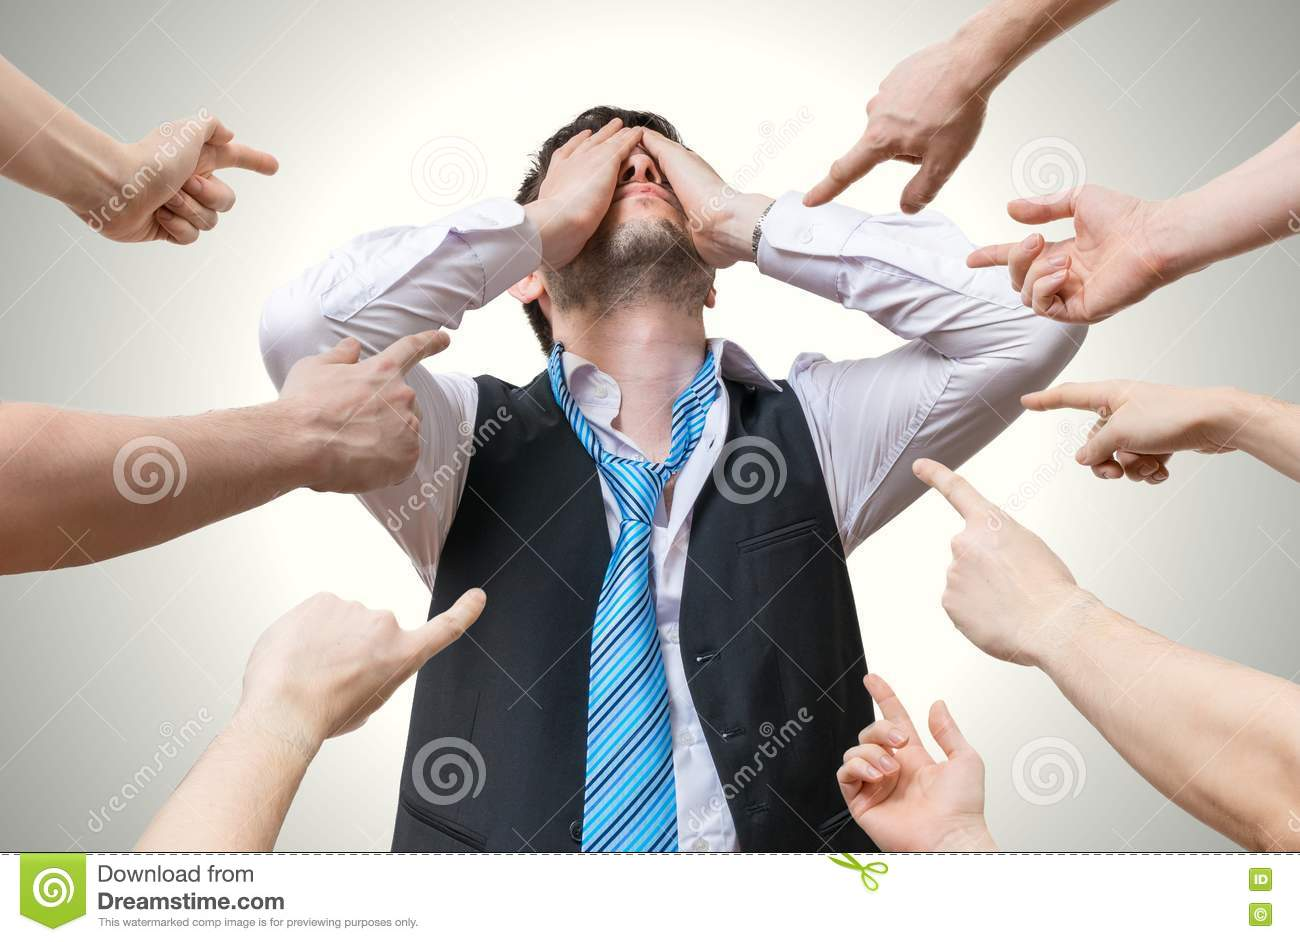 Many hands pointing at disappointed man and blame him